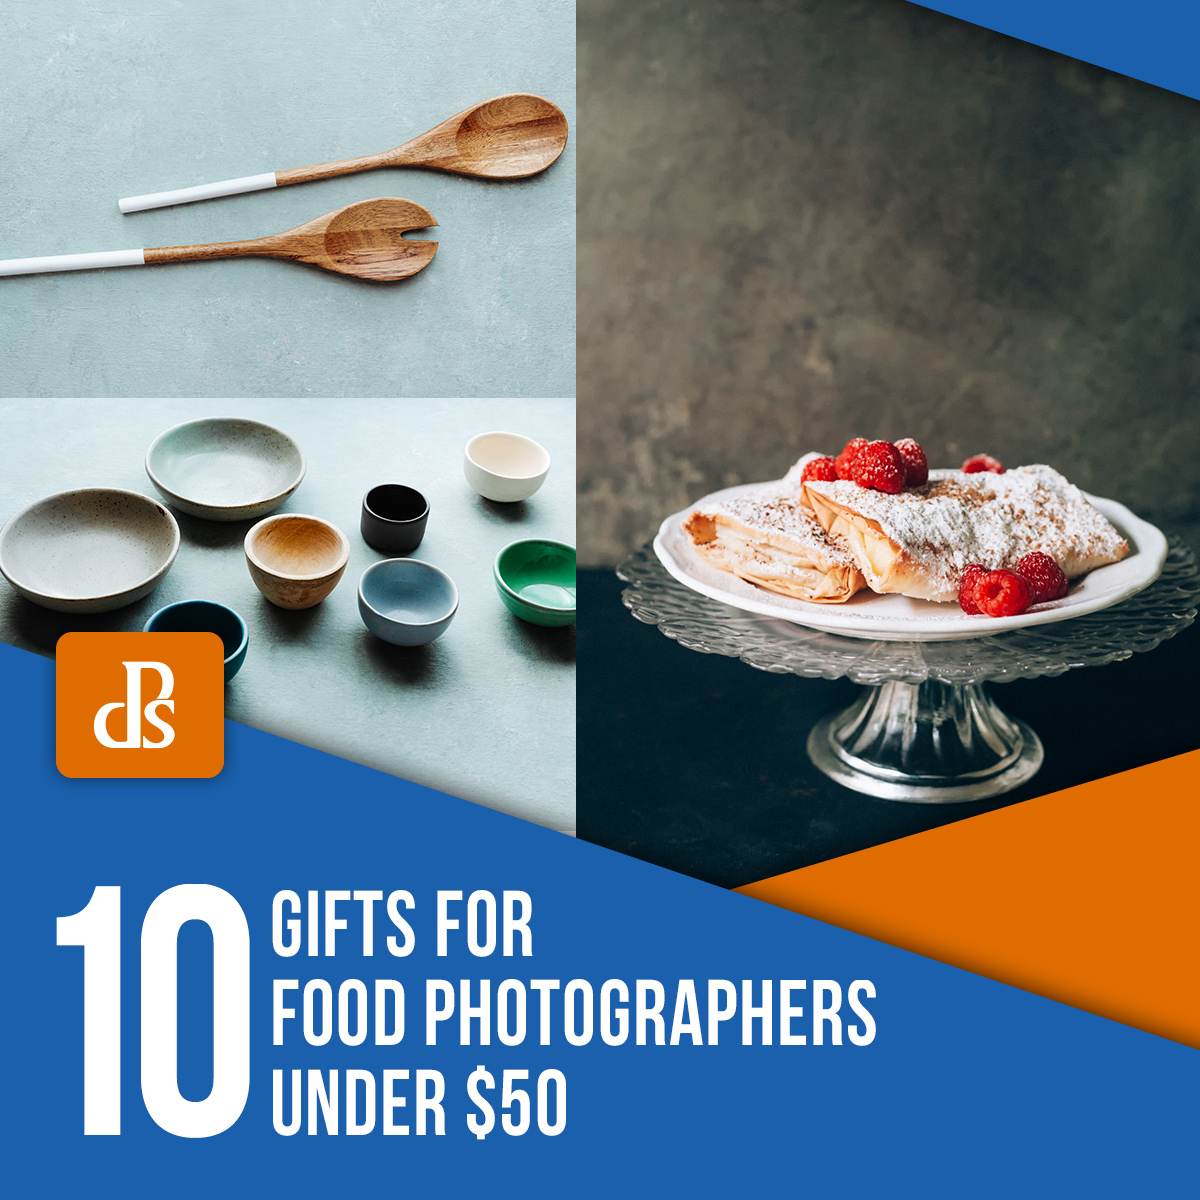 gifts-for-food-photographers-under-50-dollars